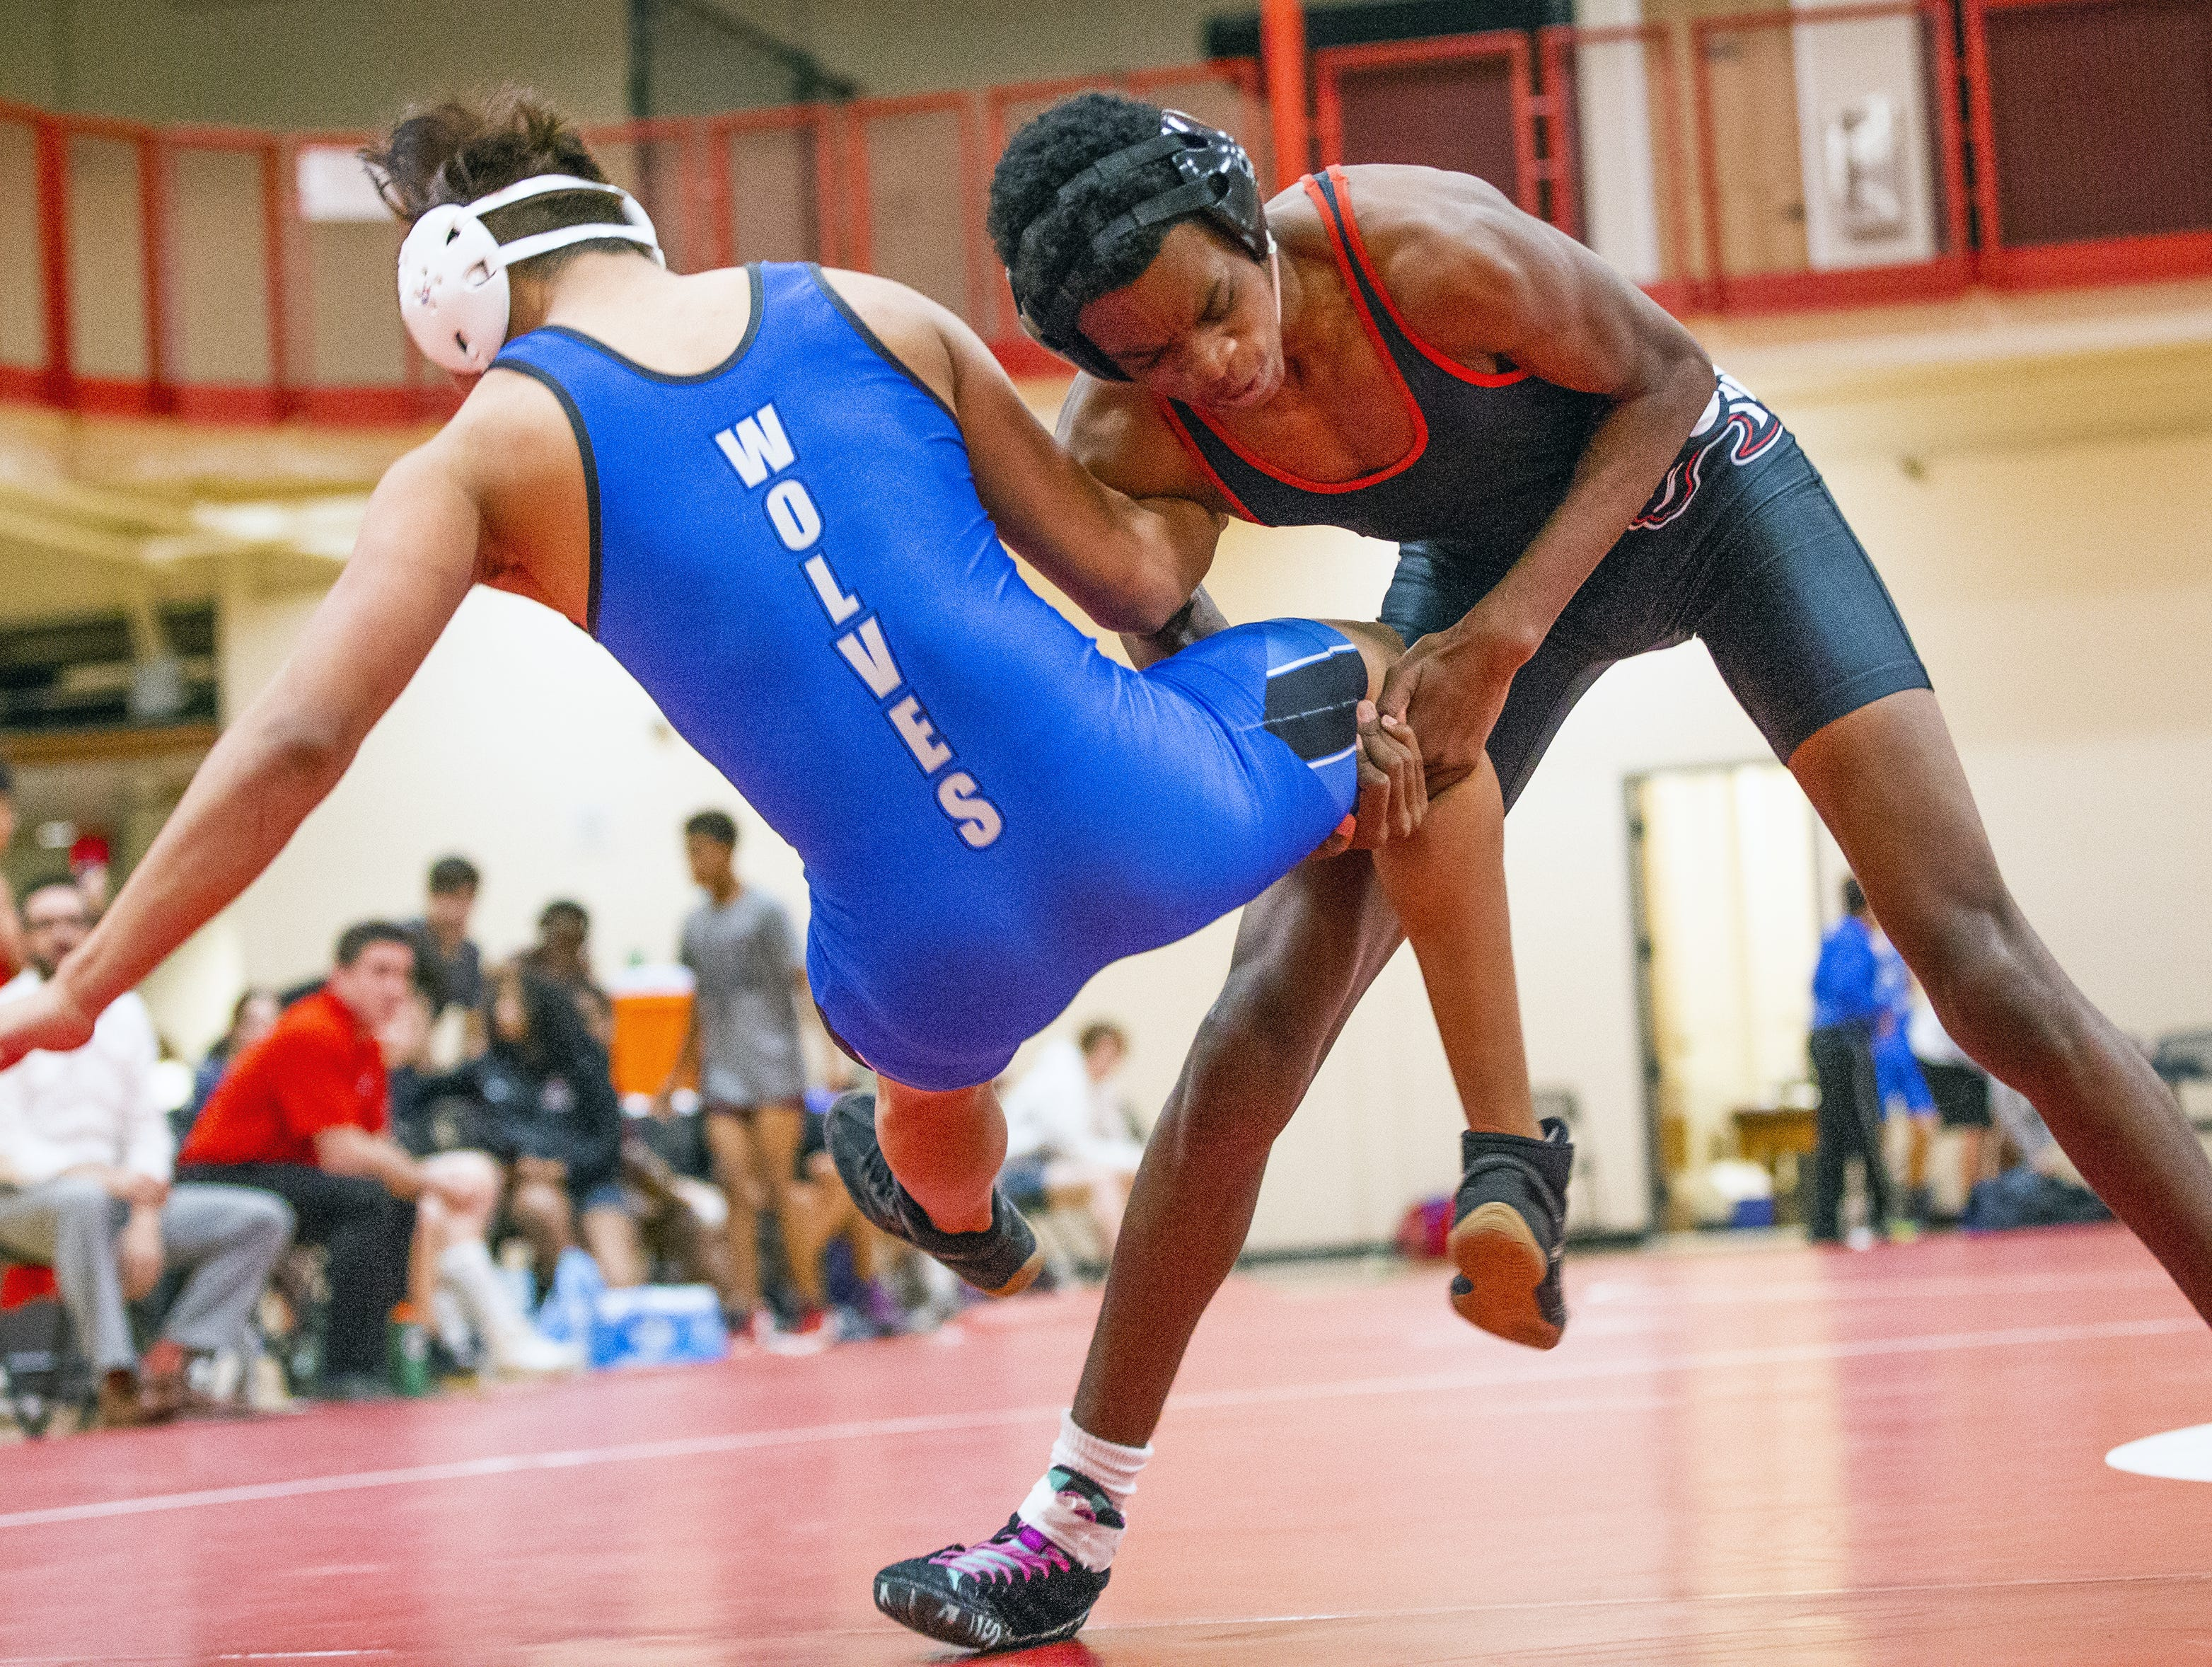 Adonis Watt is a blind wrestler for Brophy College Preparatory high school in Phoenix.  He takes on Chandler High School wrestler Kevin Rodriguez in the 152 lb. class at Brophy, Wednesday, January 23, 2019.  Watt won with a pin in the third period.